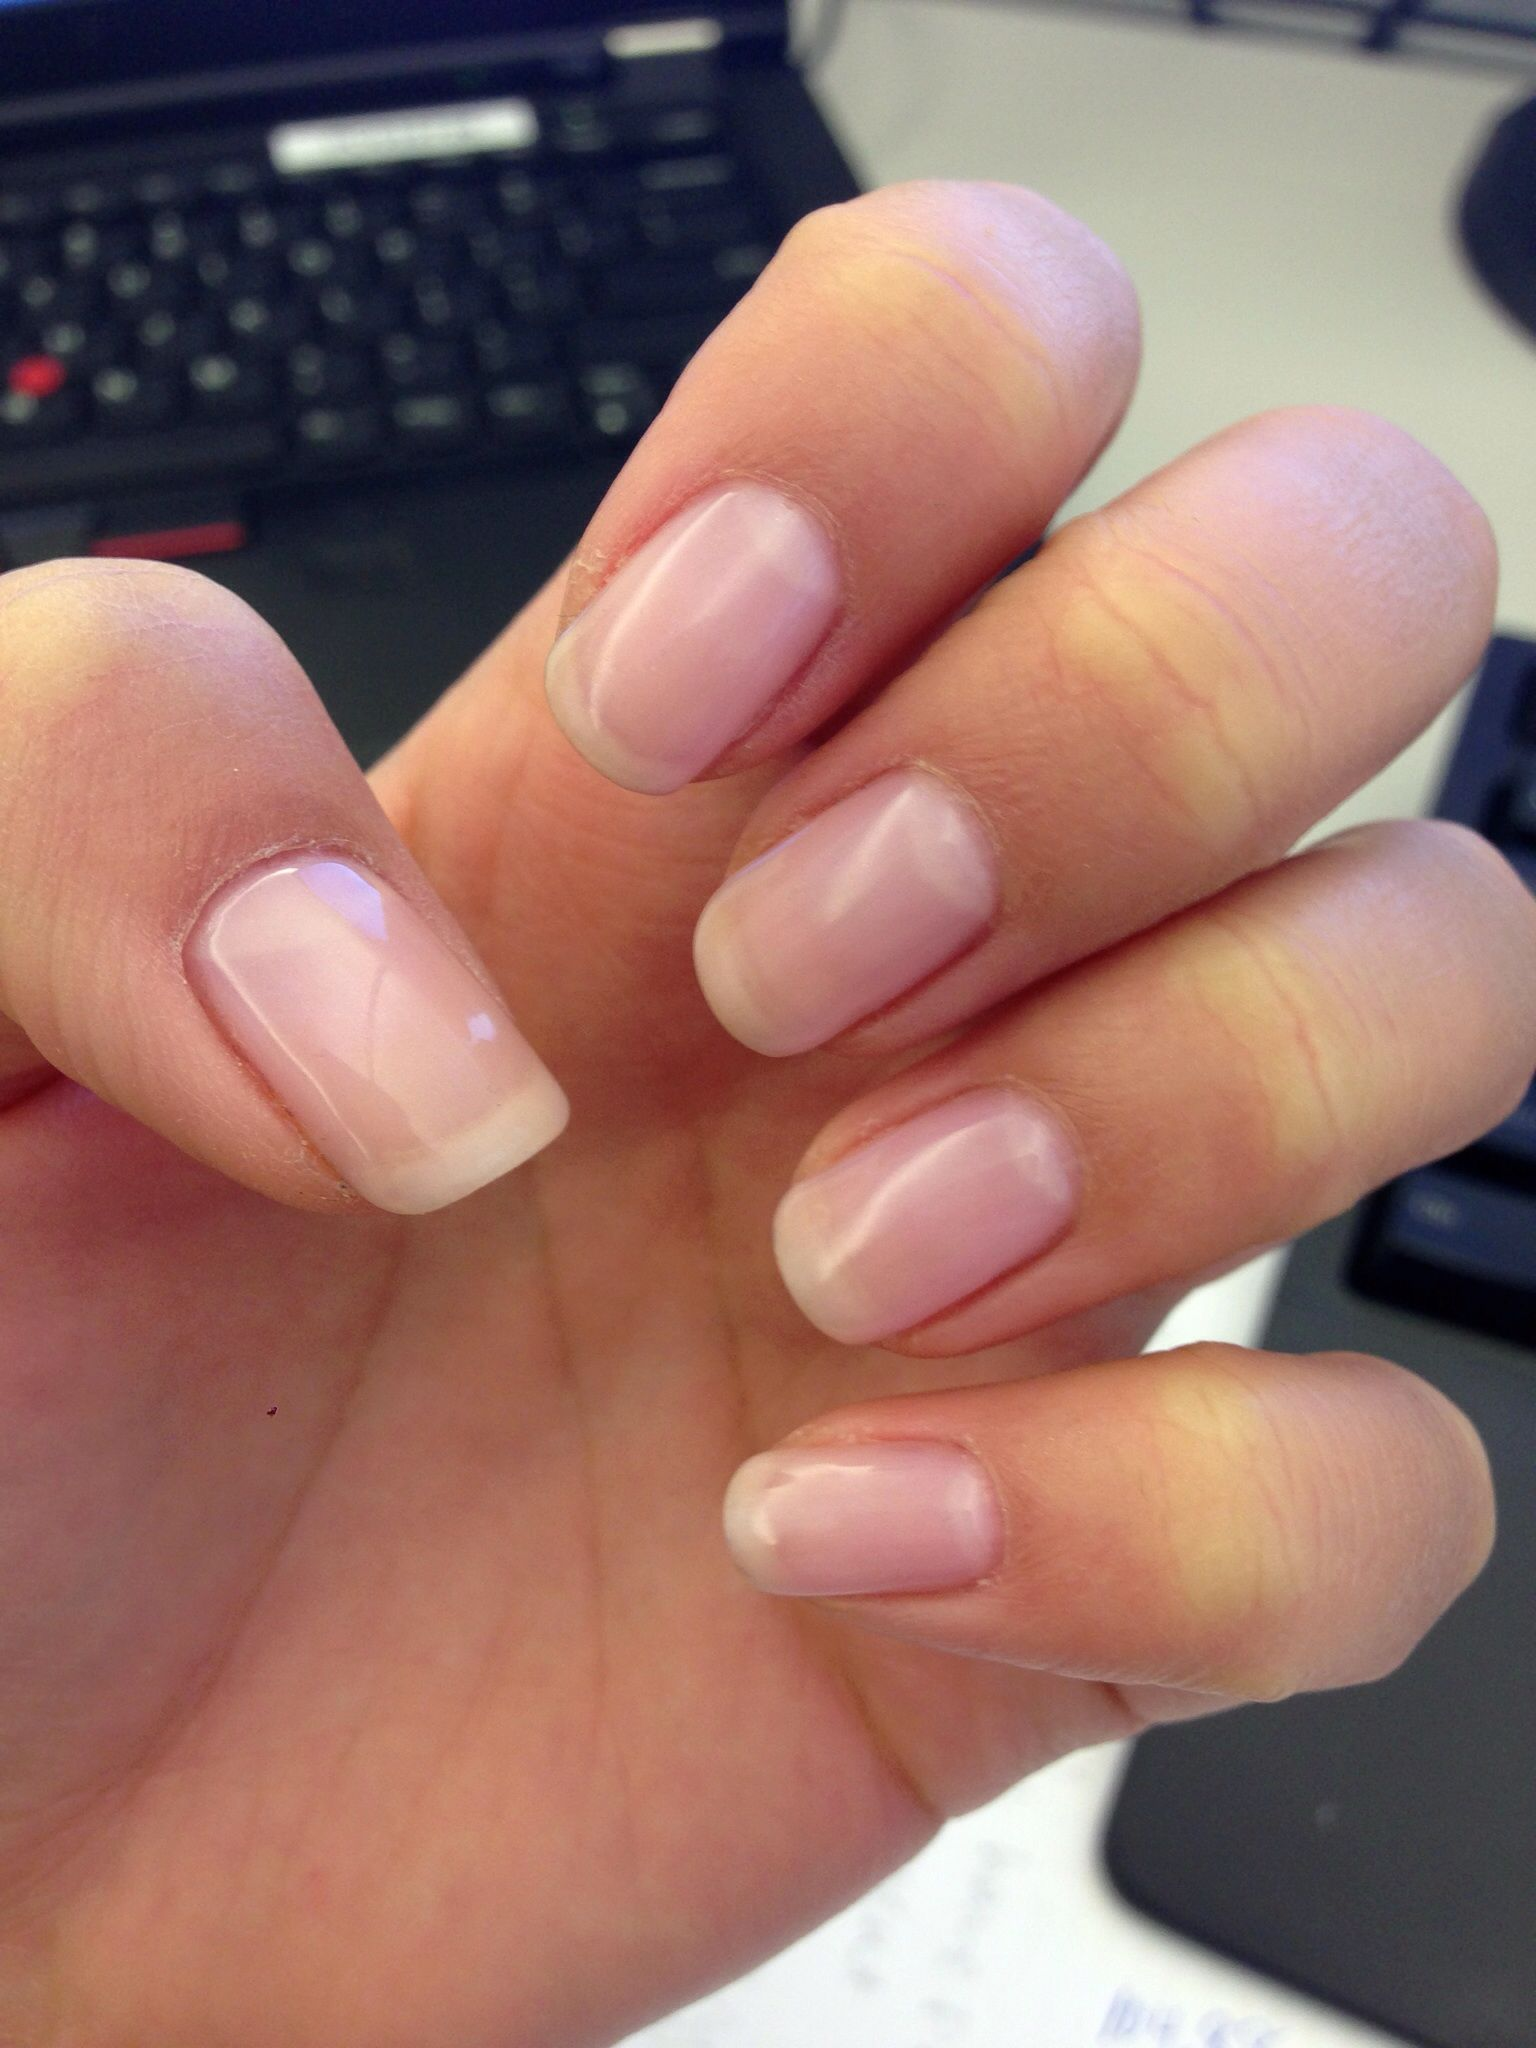 Shellac - negligee | nails | Pinterest